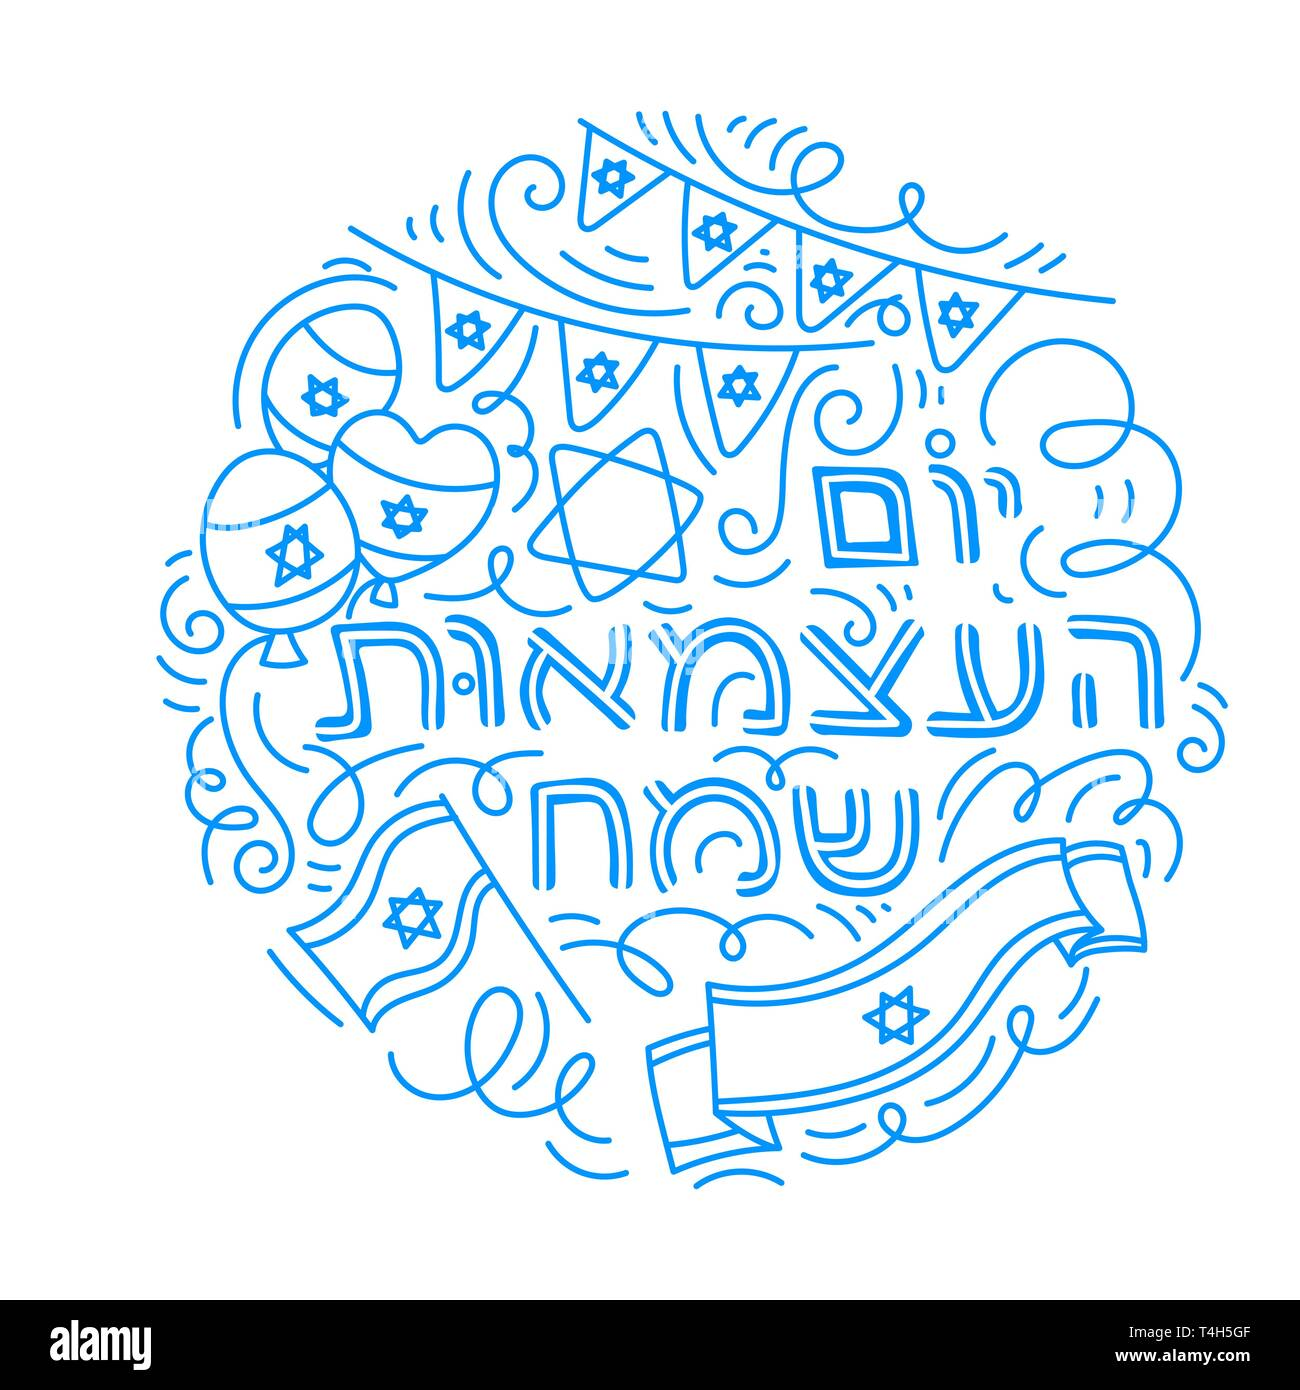 Happy Israel Independence Day (Yom Haatzmaut) in Hebrew. Hand drawn doodle style. Linear vector Illustration. Isolated on white background. - Stock Vector